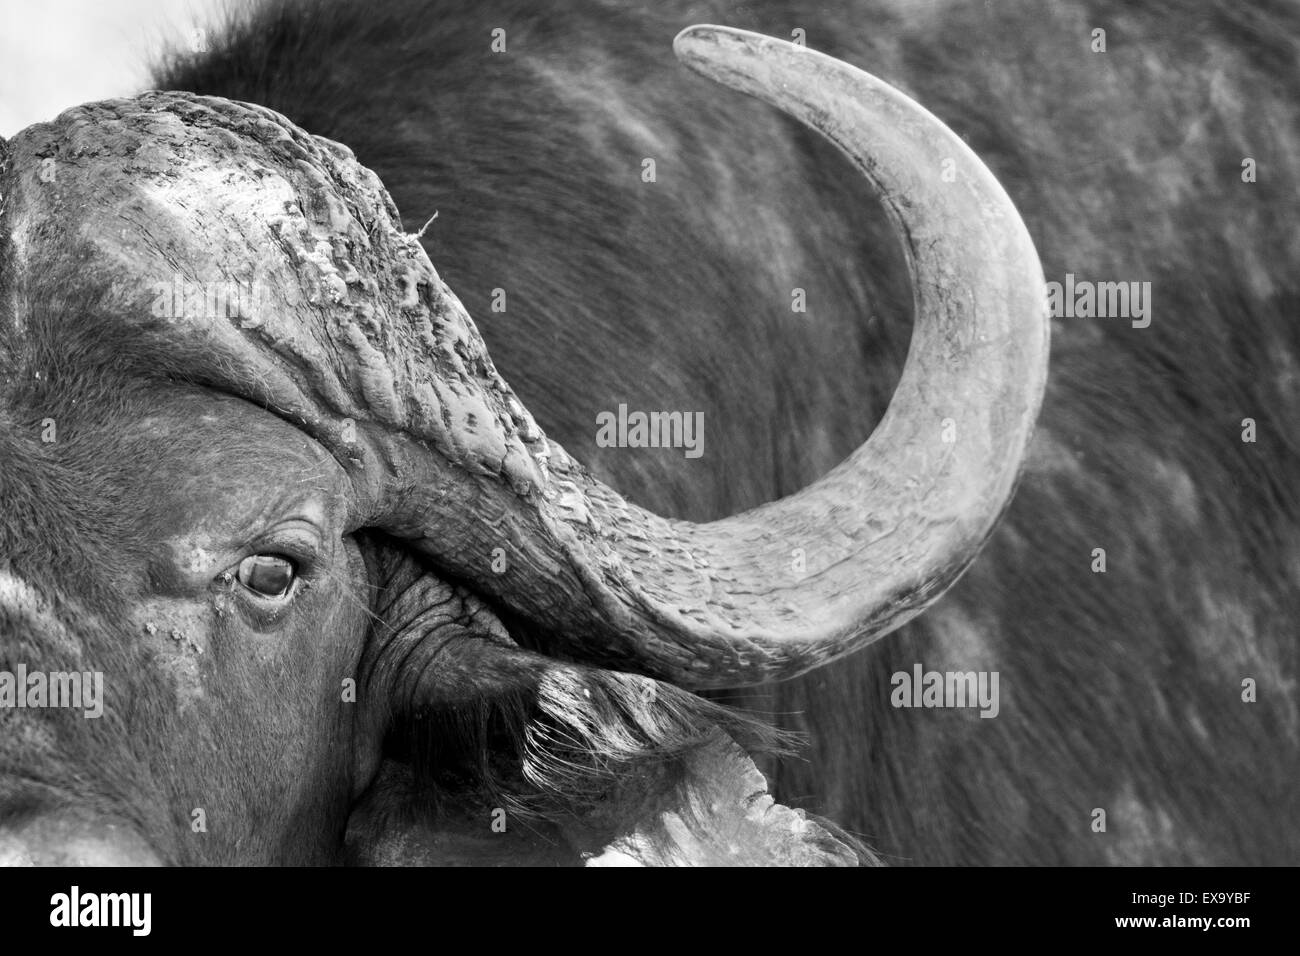 South Africa, Kruger National Park, Close-up view of Cape Buffalo (Syncerus caffer) in shallow stream on summer - Stock Image